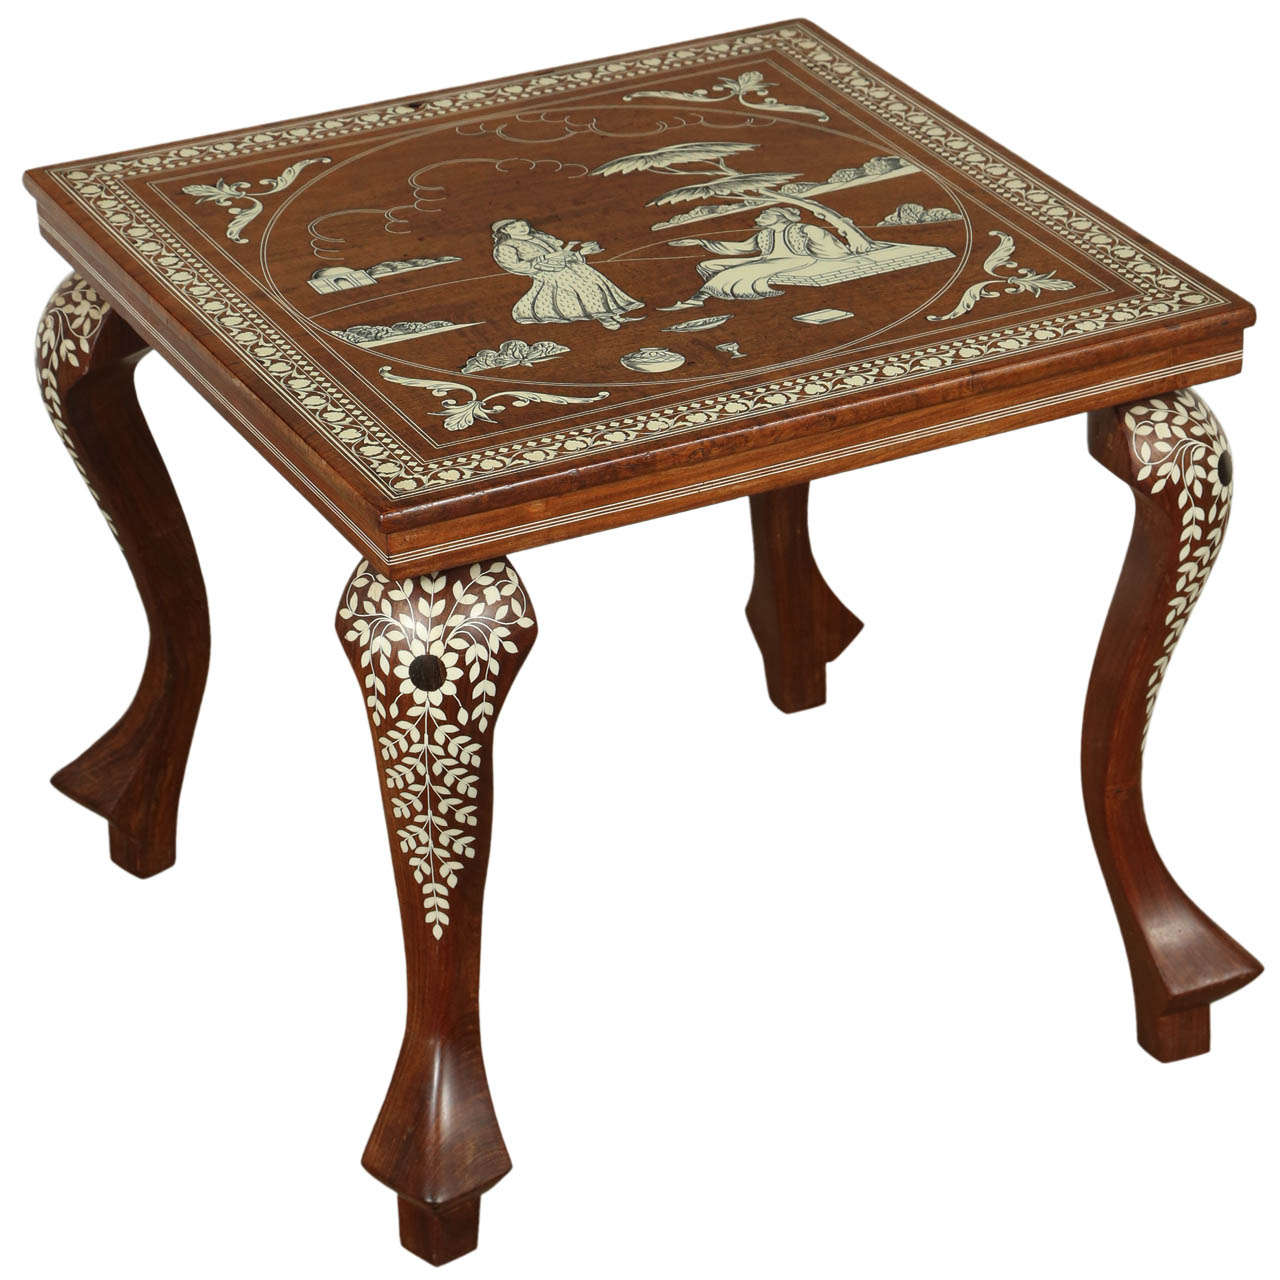 Anglo indian inlaid square side table for sale at 1stdibs for Square side table